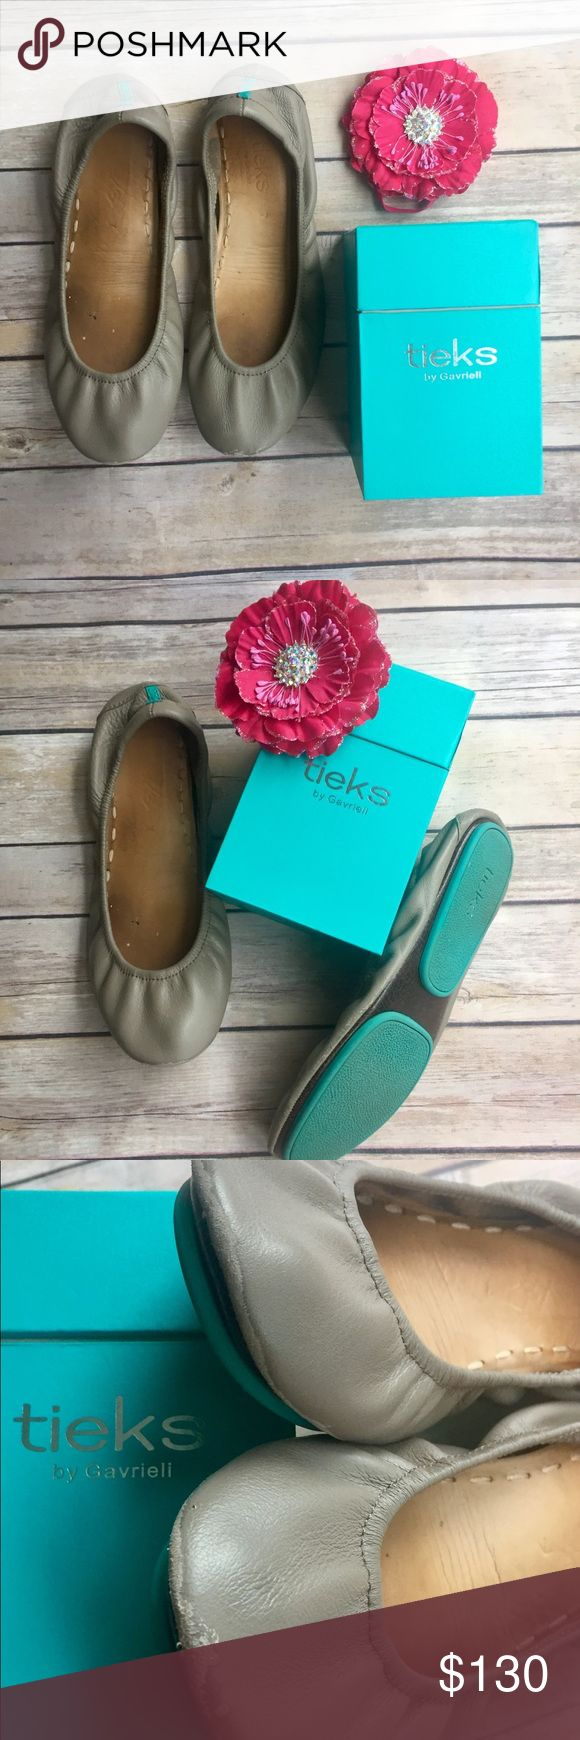 SALE Taupe Tieks Versatile taupe tieks. Size 7. They have some wear on the soles, tips, and heels. Still a lot of life left in these babies! Tieks Shoes Flats & Loafers